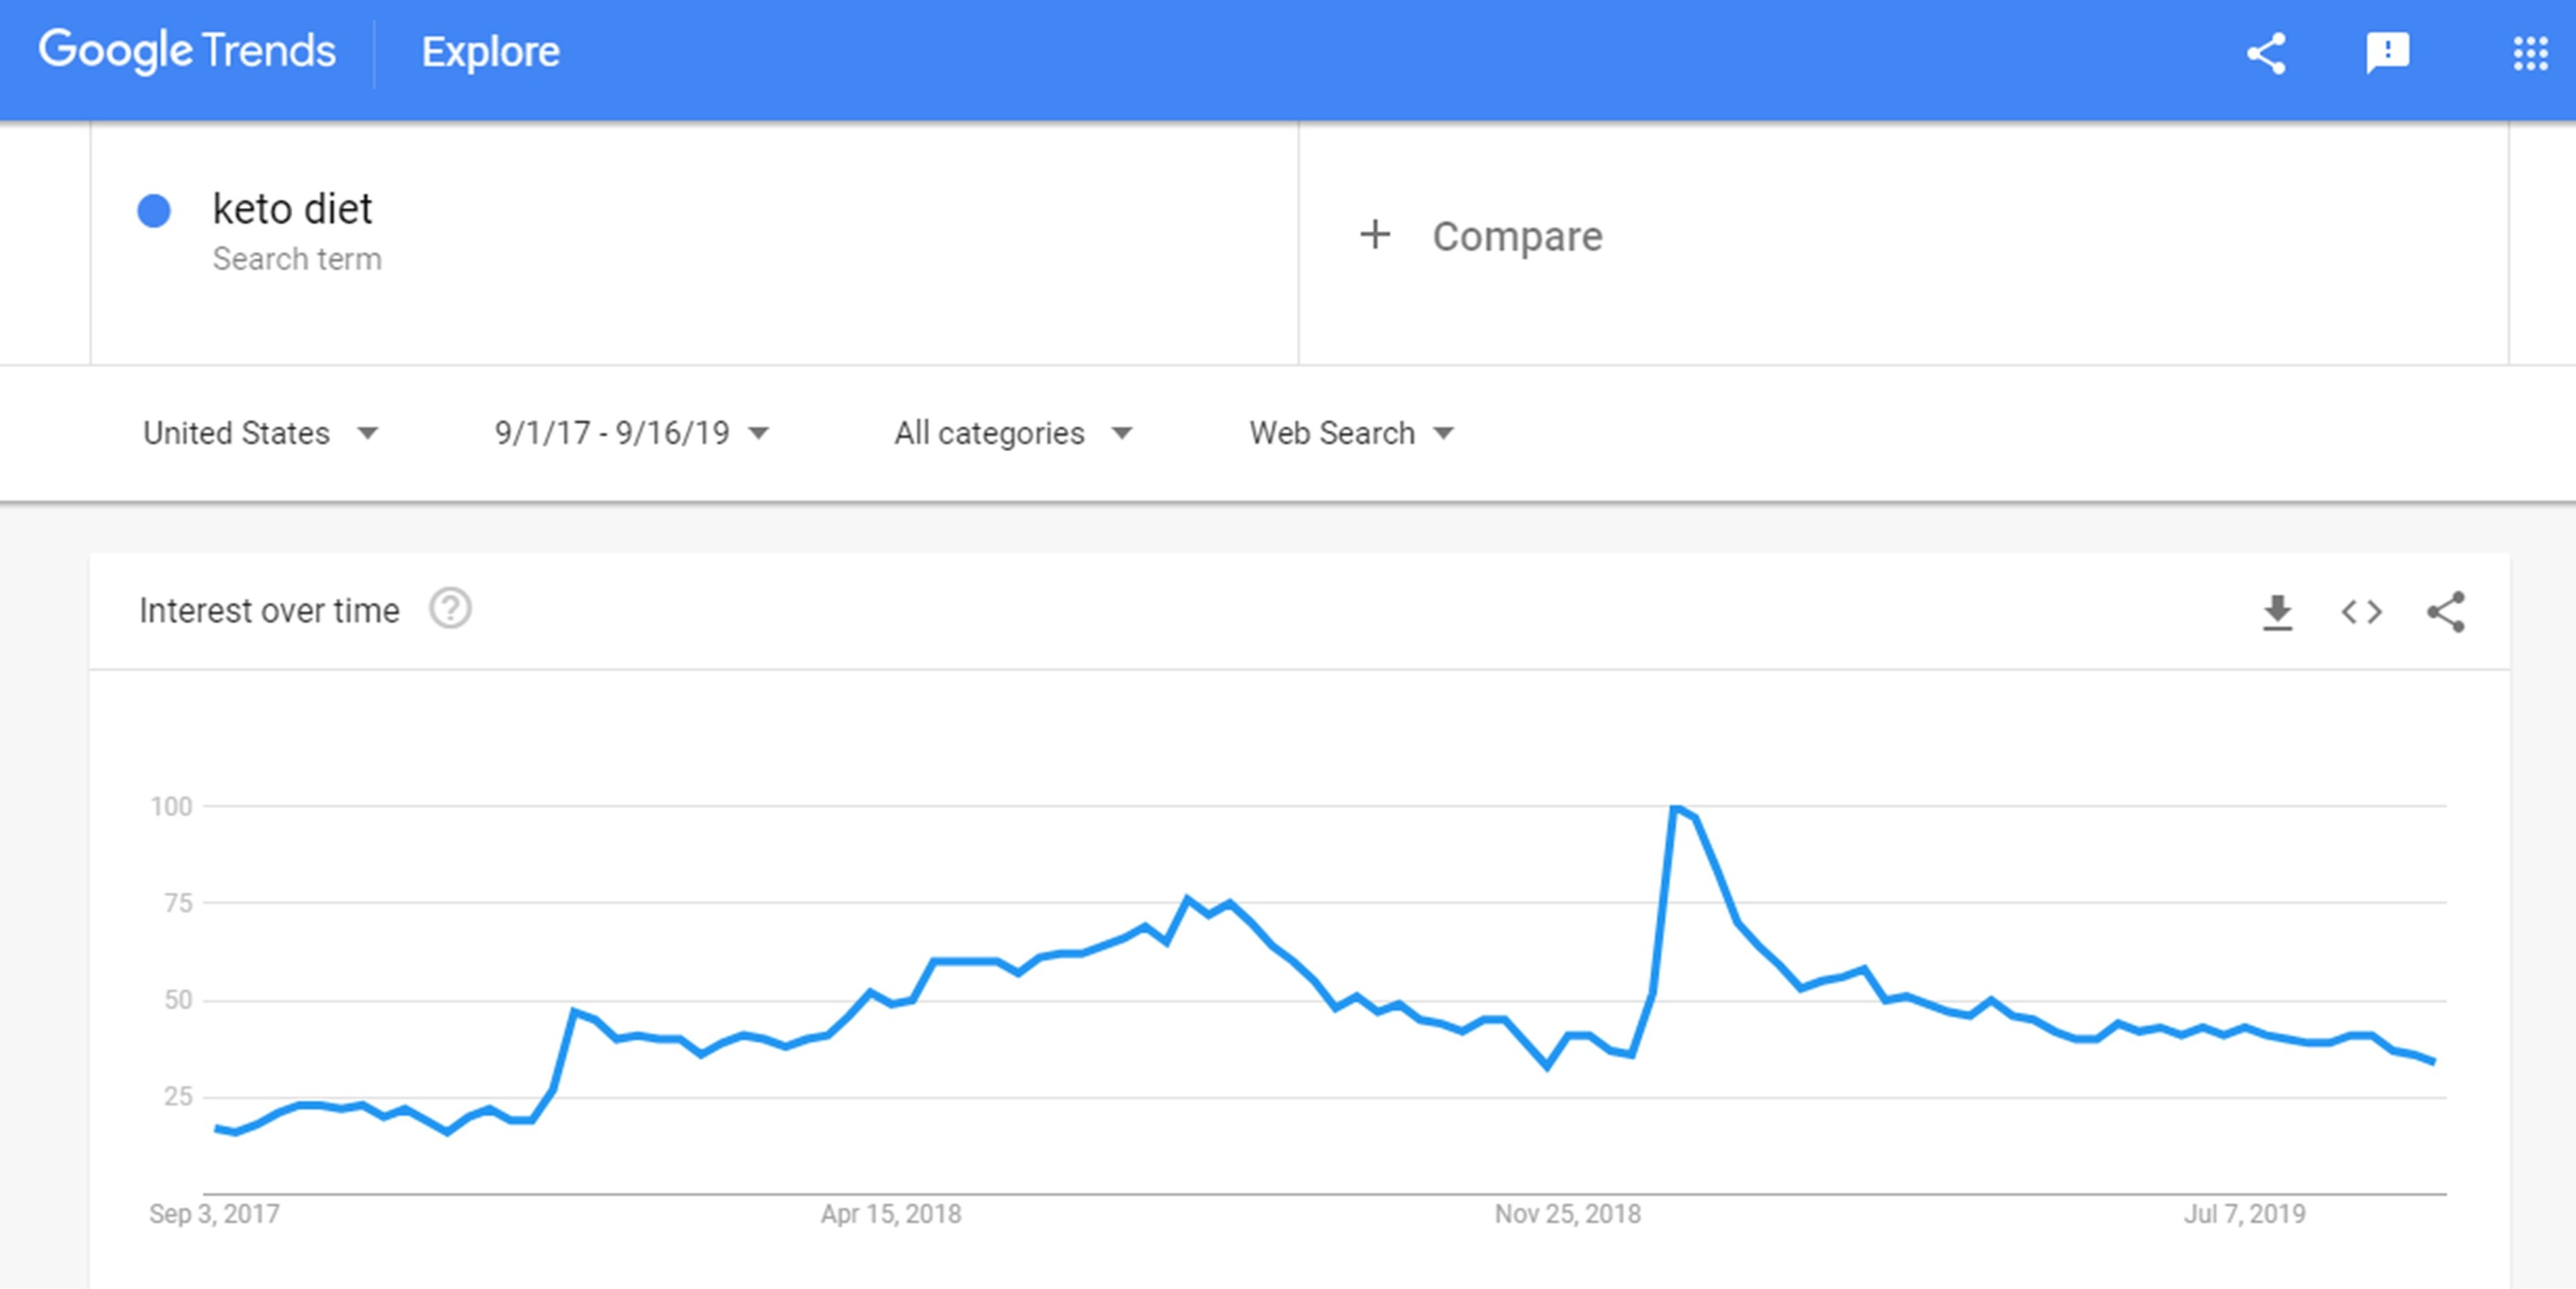 Google trends chart showing interest about keto diet keyword over time